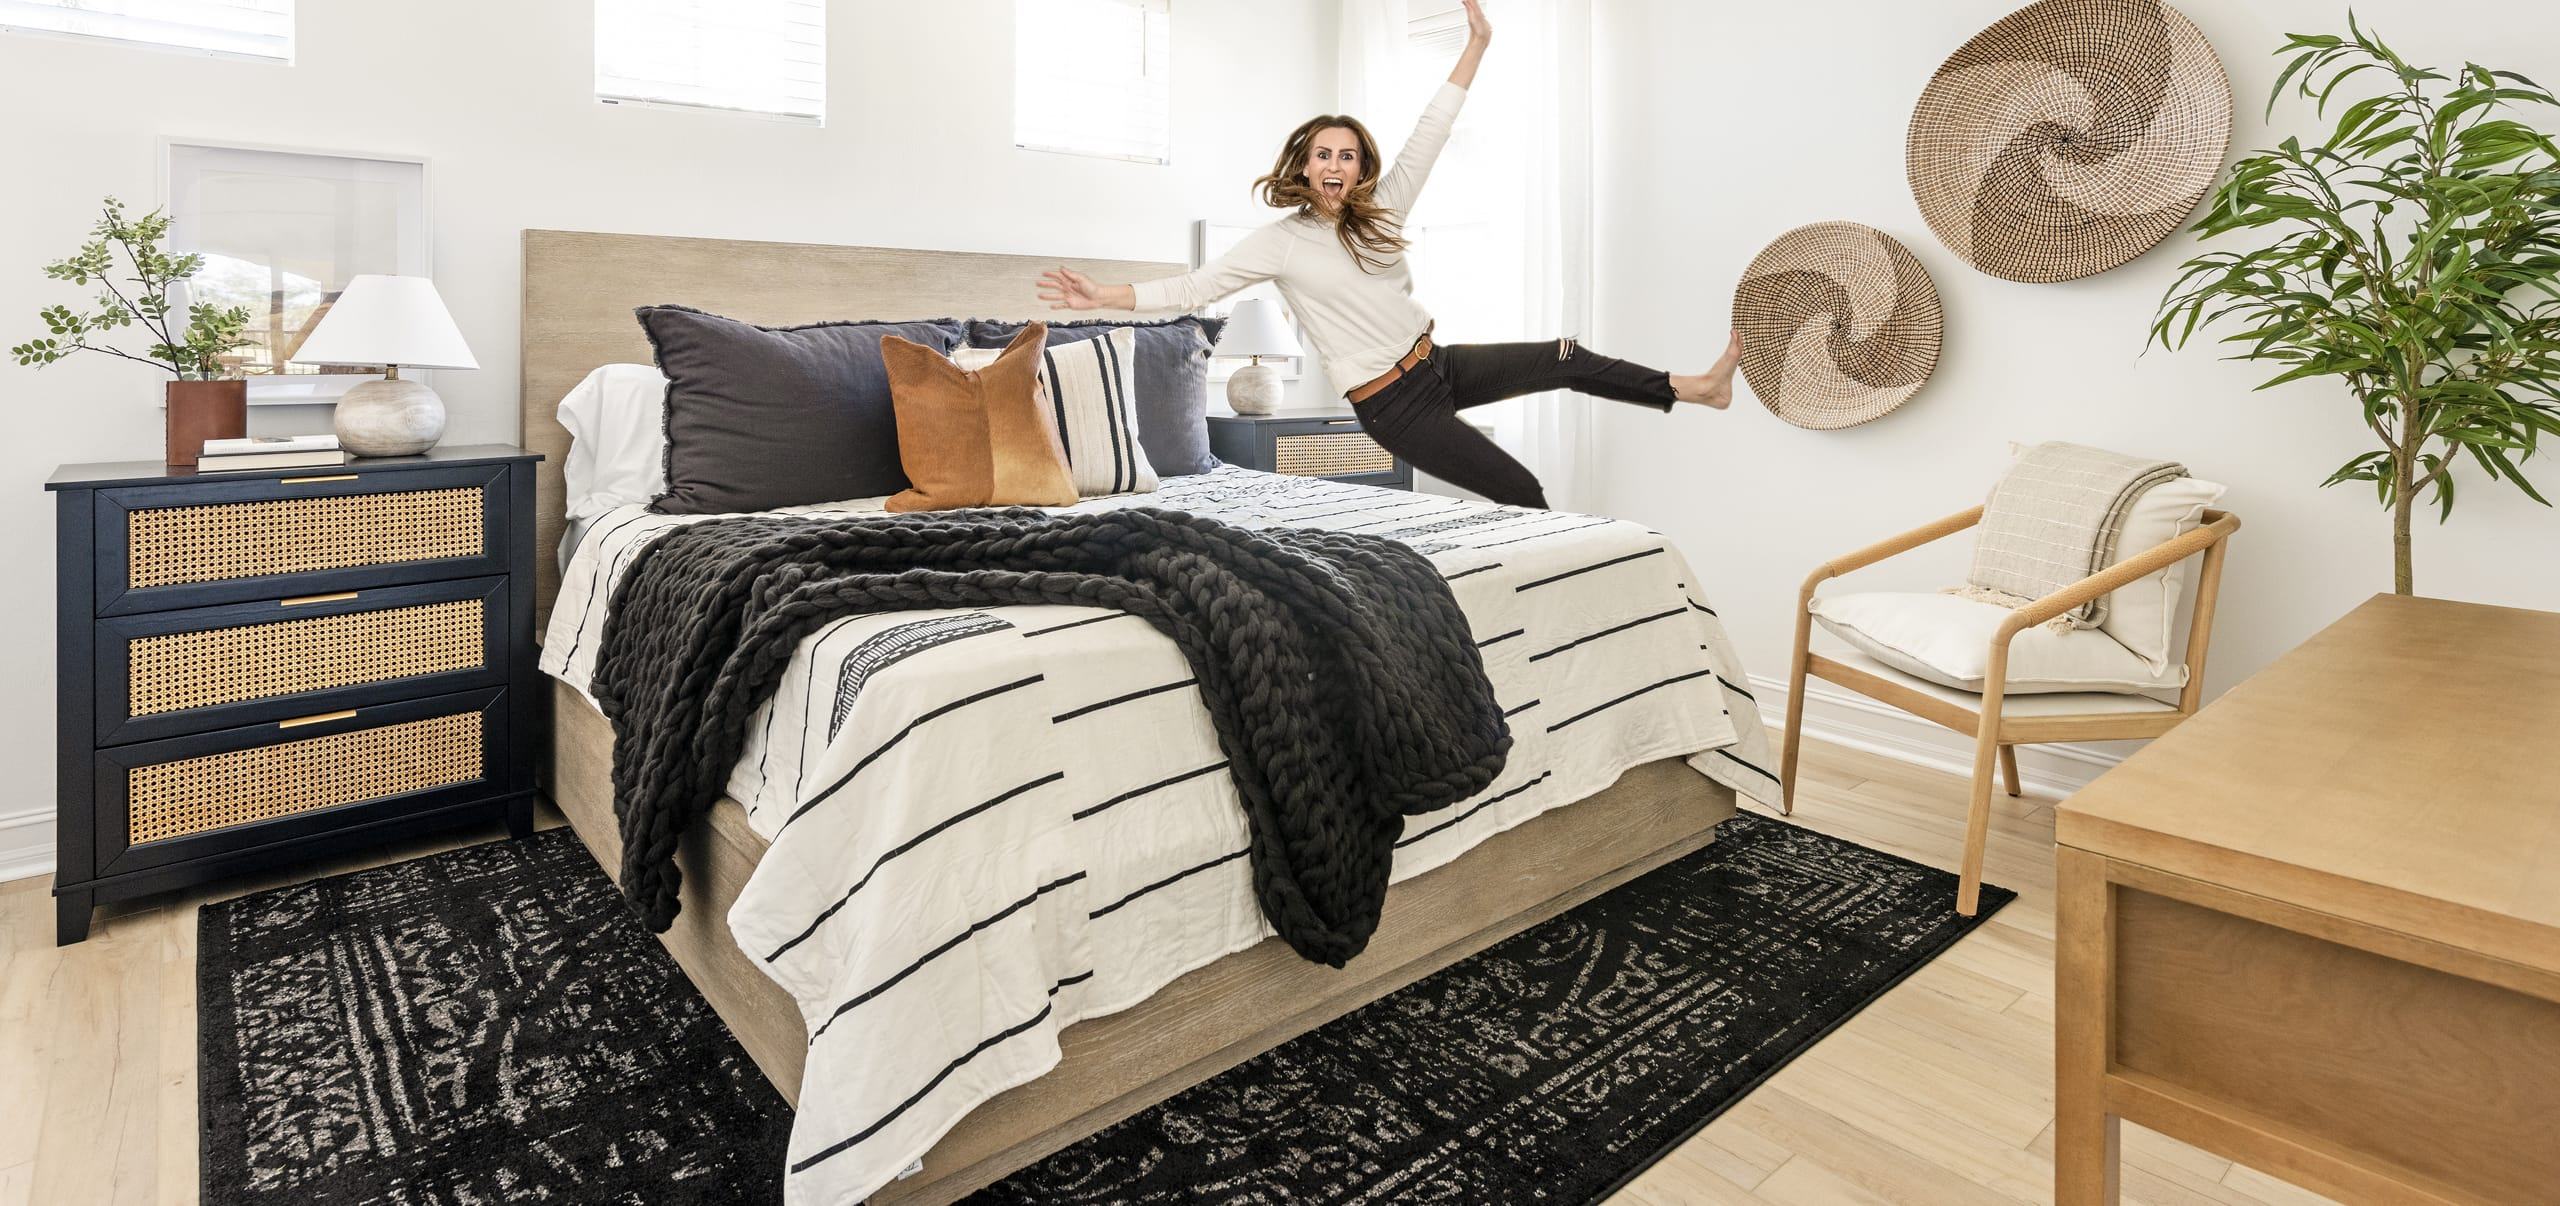 White Bedroom Black Rug Pillows Cow Skin White Black Pin Strip Bedsheets Wicker Faced Dresser Jump On Bed